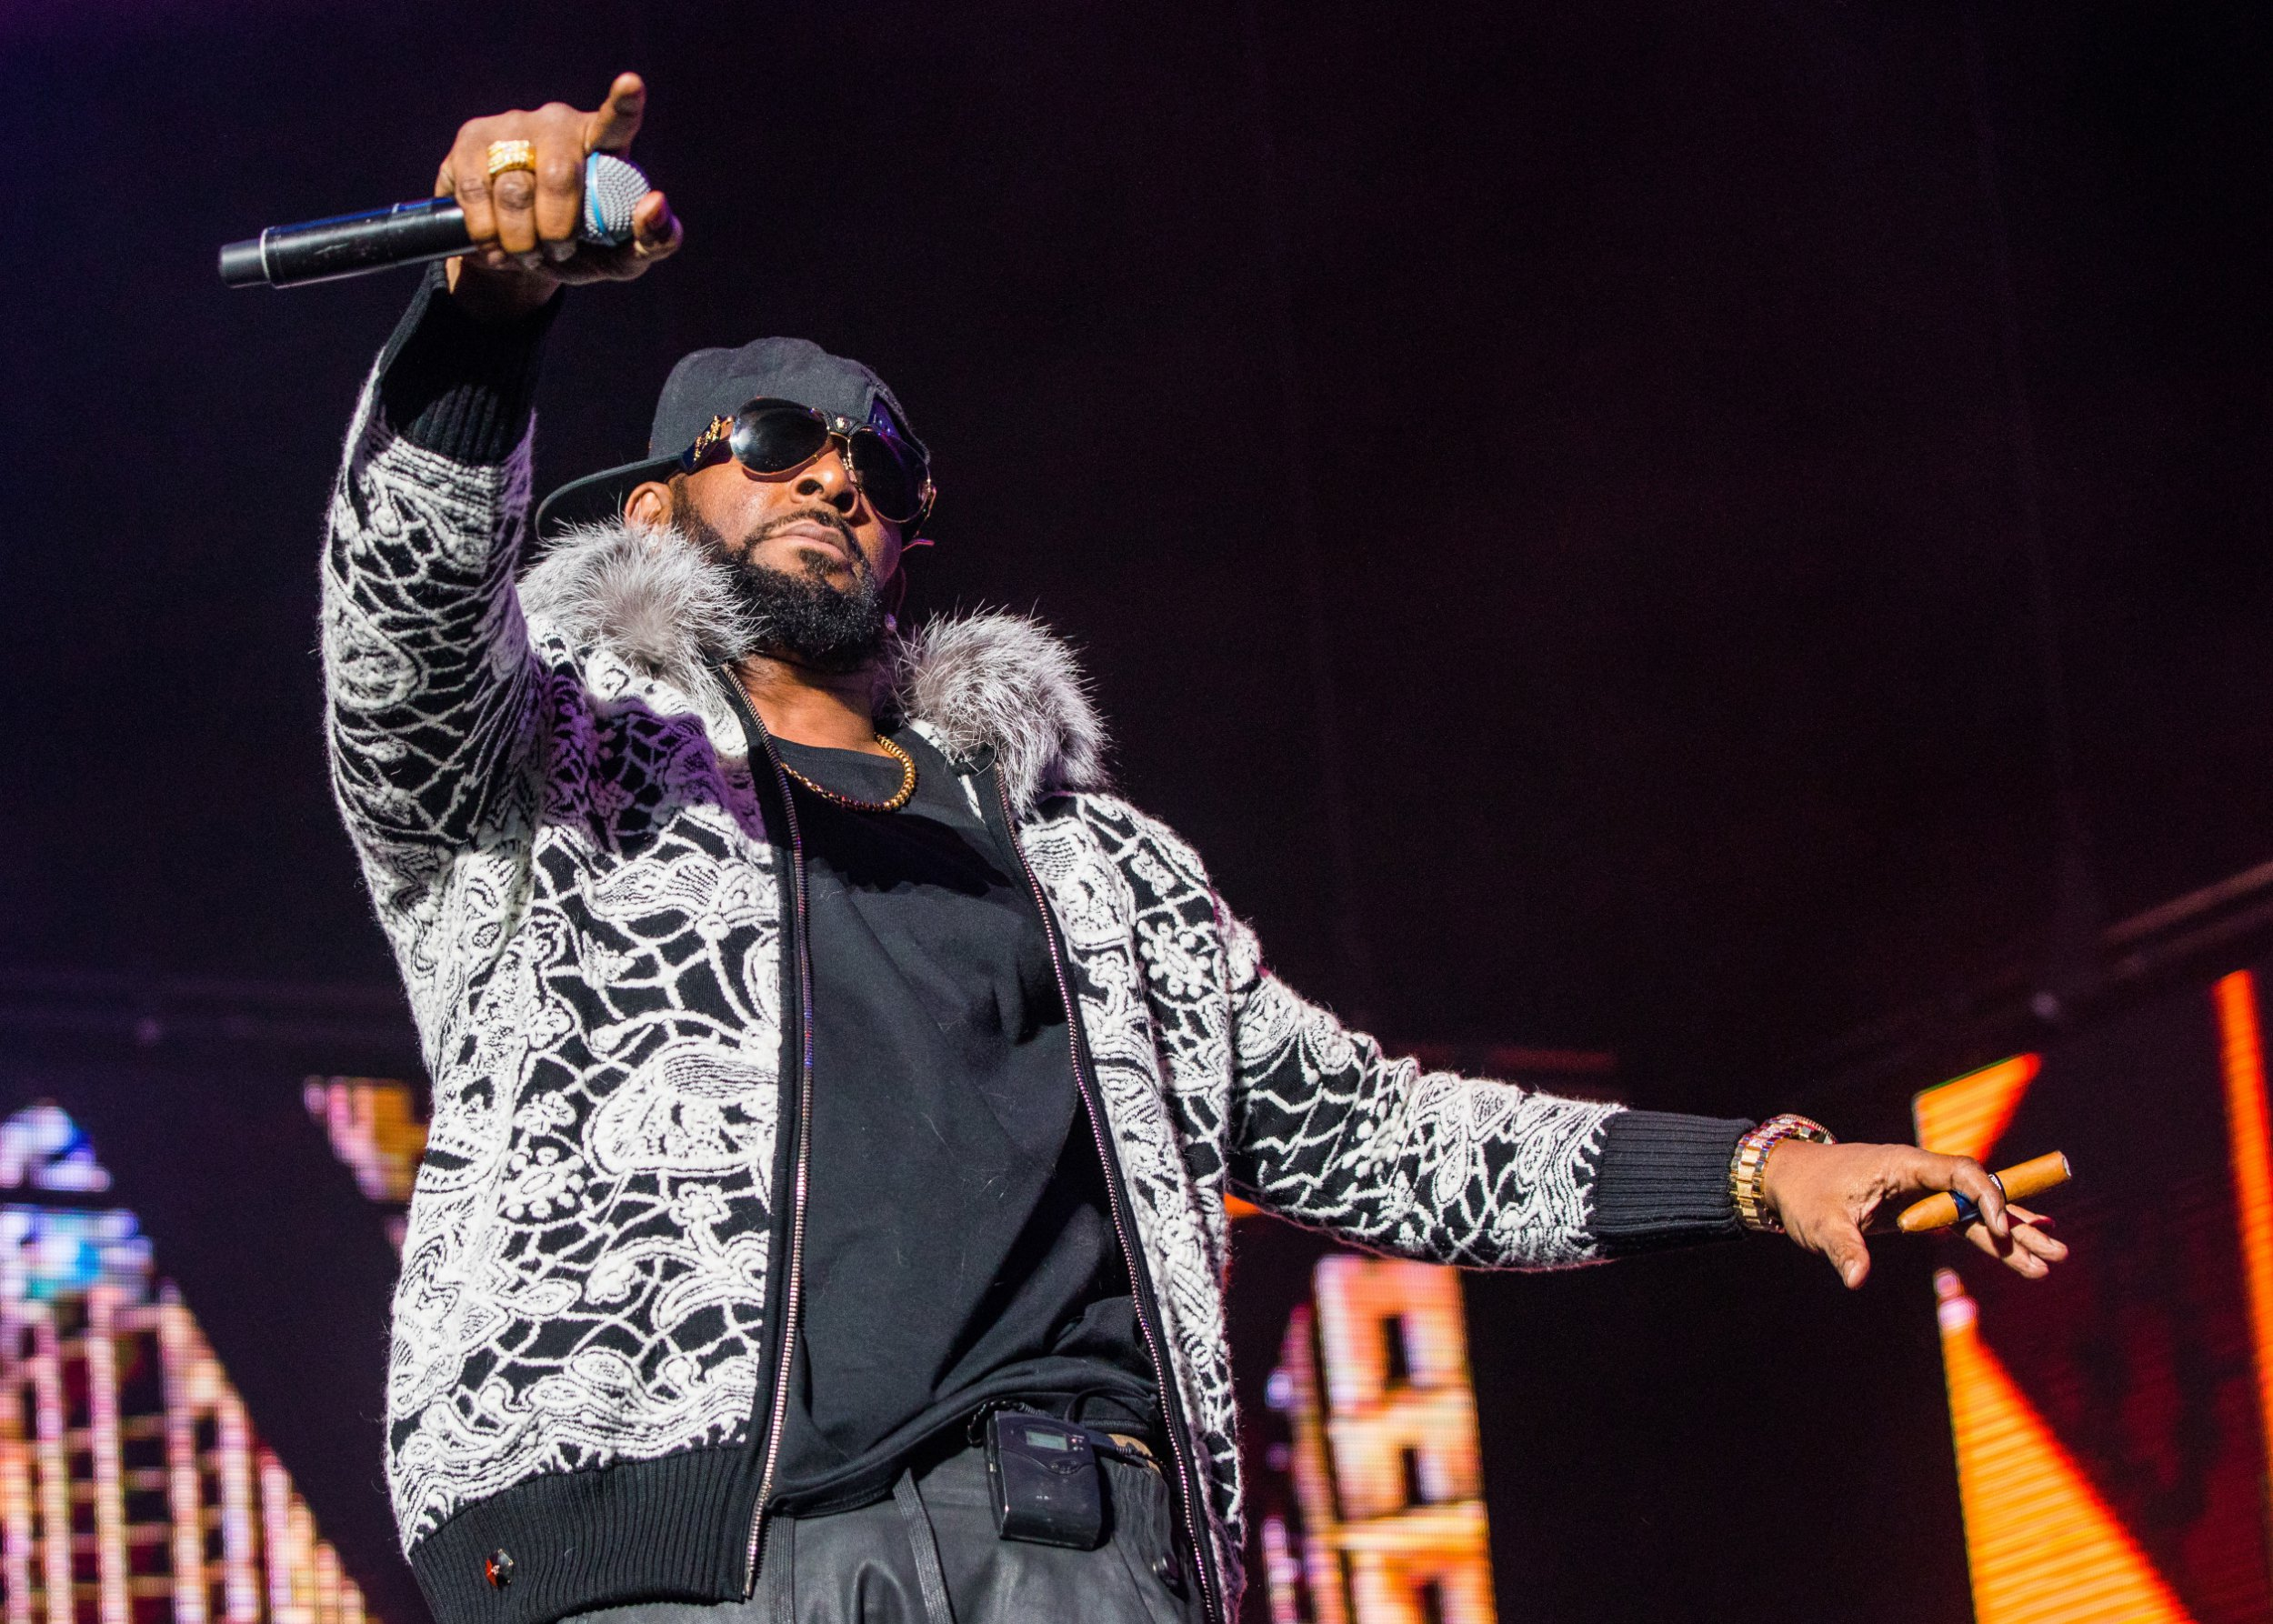 Facebook removes page dedicated to discrediting R Kelly's 'sex slave' accusers as criminal investigation is launched